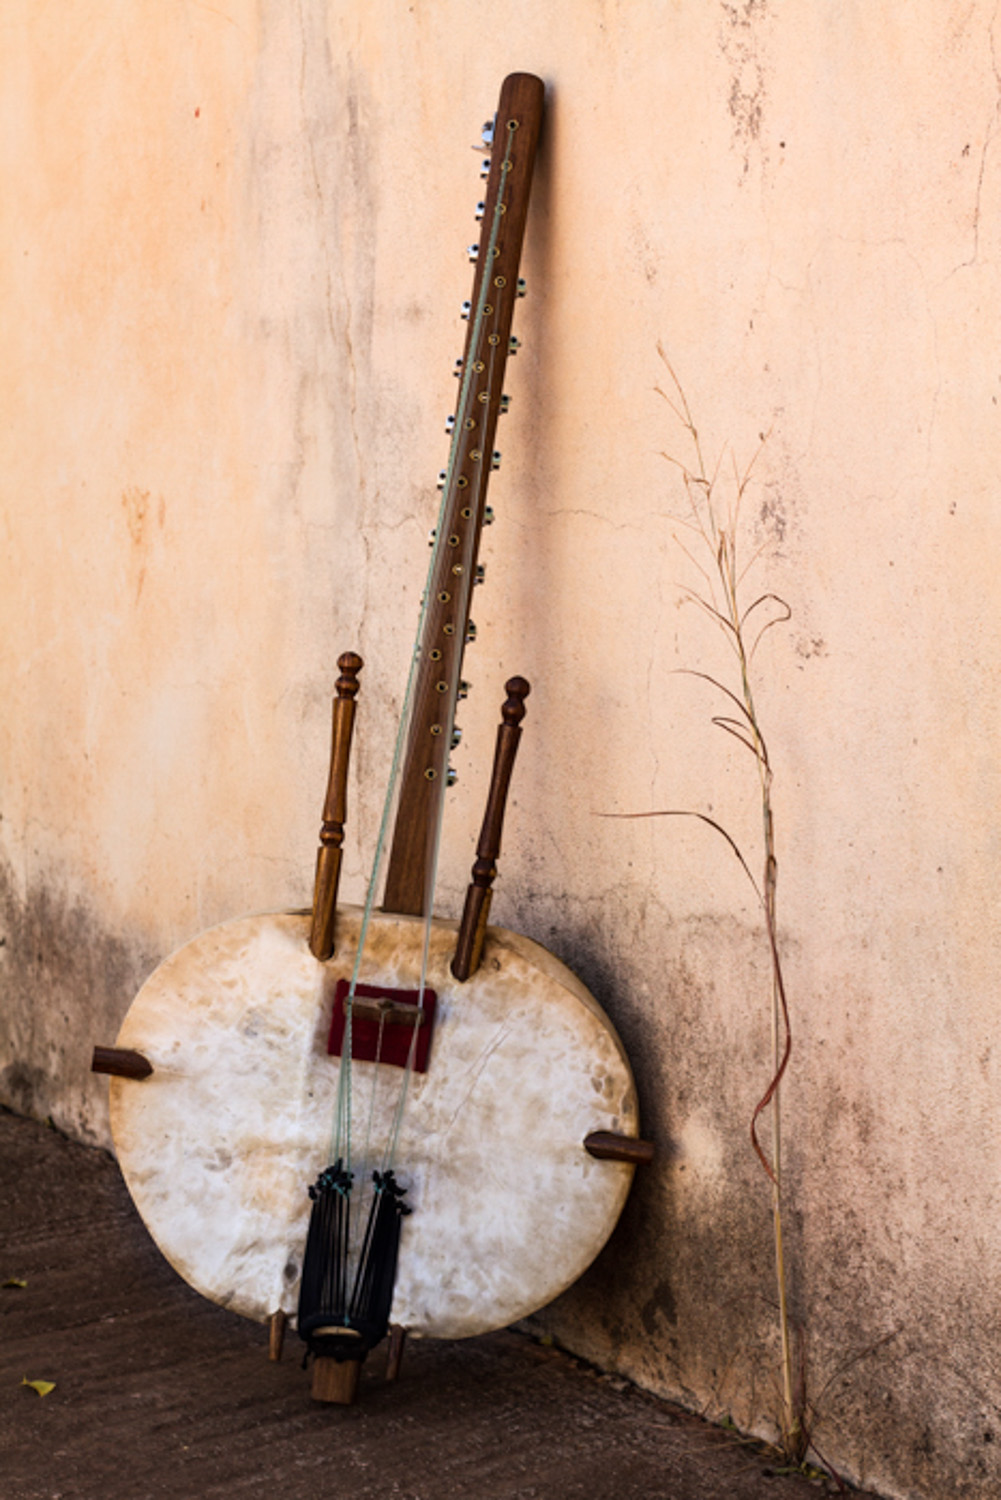 Photograph of a Mandé Kora, a string West African instrument made out of a calabash.